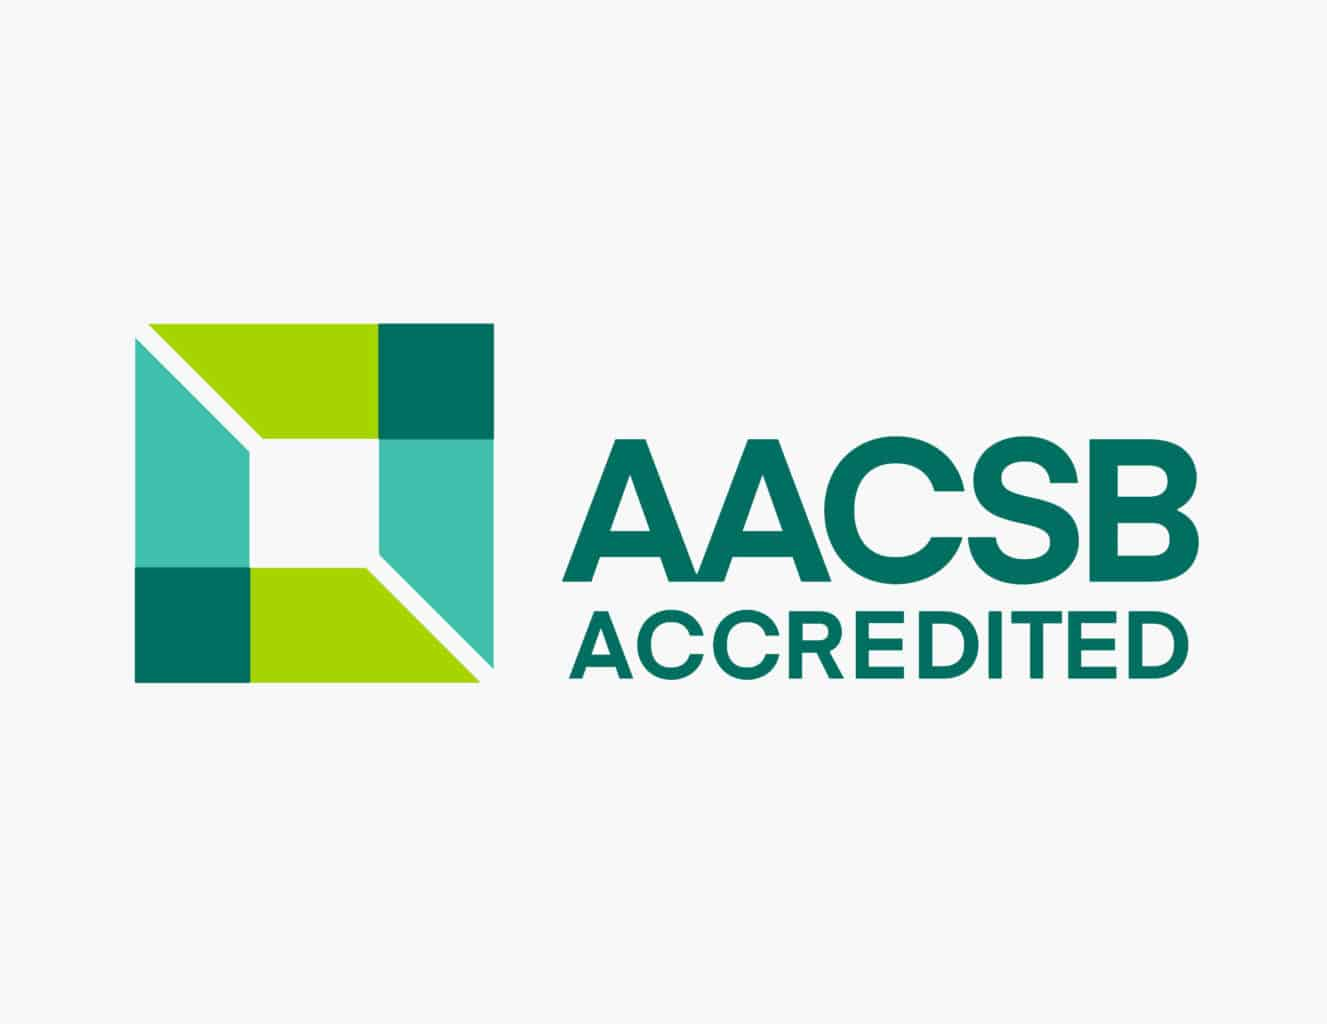 aacsb-logo-accredited-color-Gray